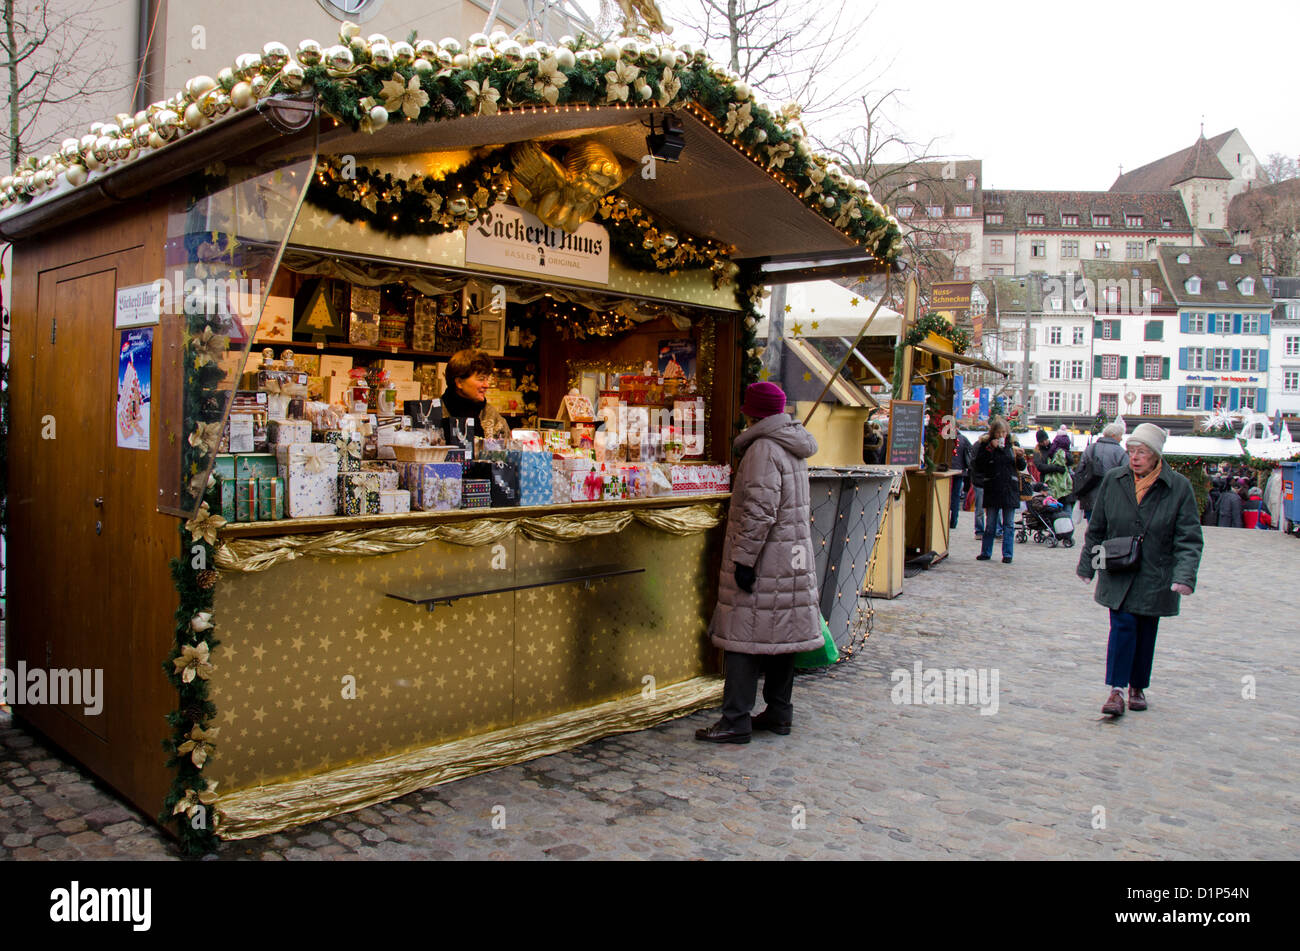 basel christmas market stock photos basel christmas. Black Bedroom Furniture Sets. Home Design Ideas